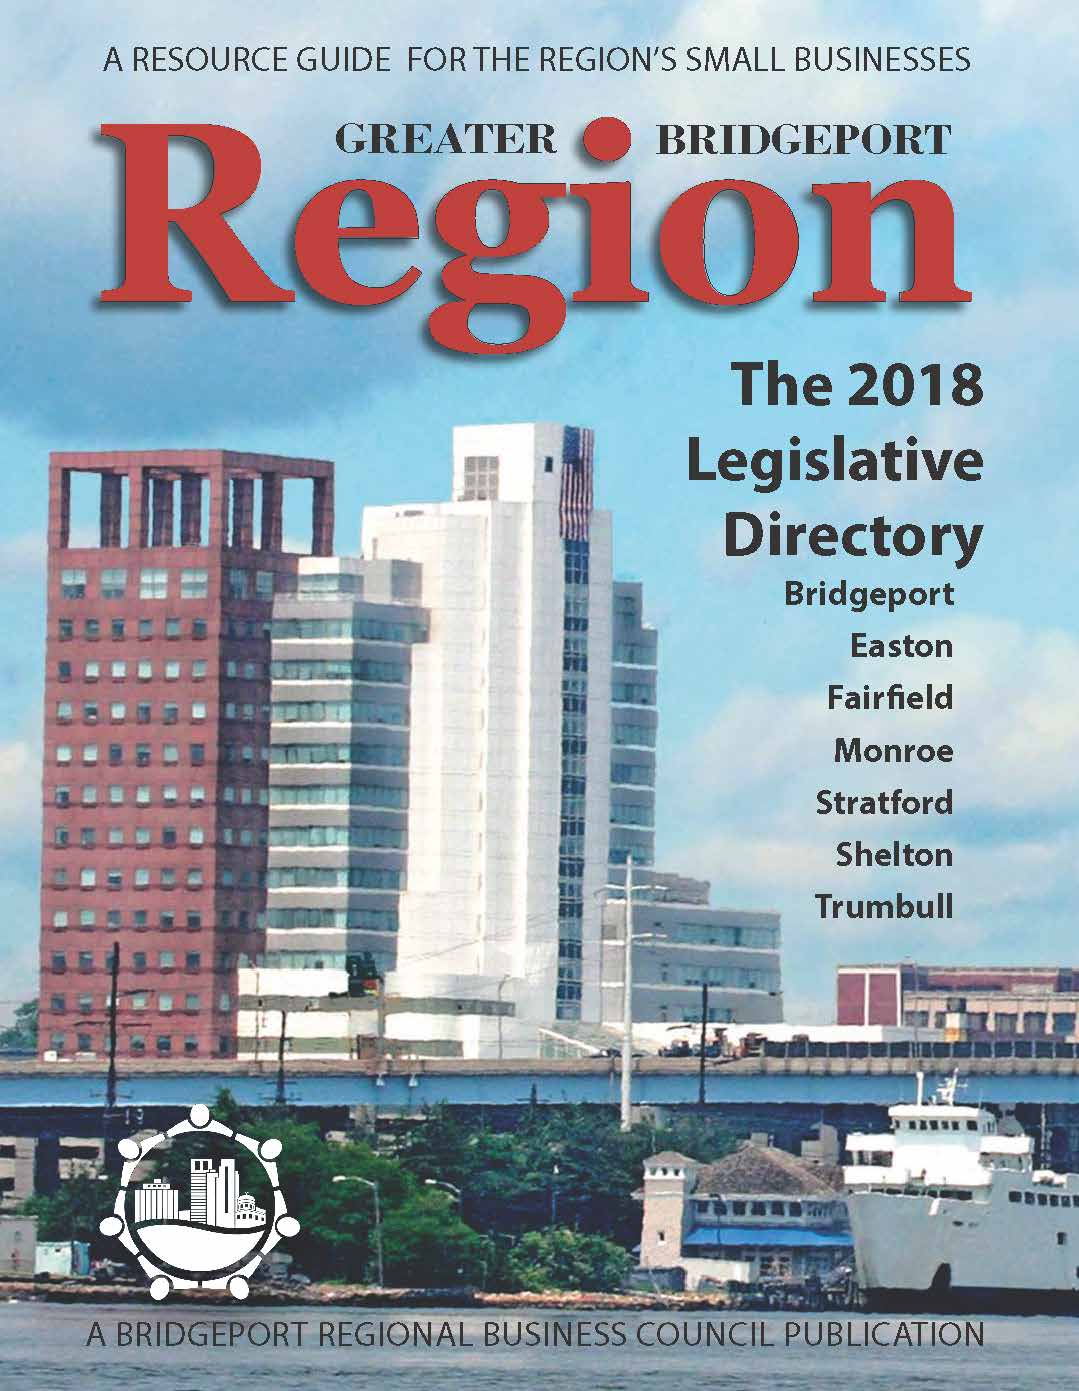 2018-Directory-of-Elected-Officials-and-Legislative-Agenda-of-the-Bridgeport-Regional-Business-Council